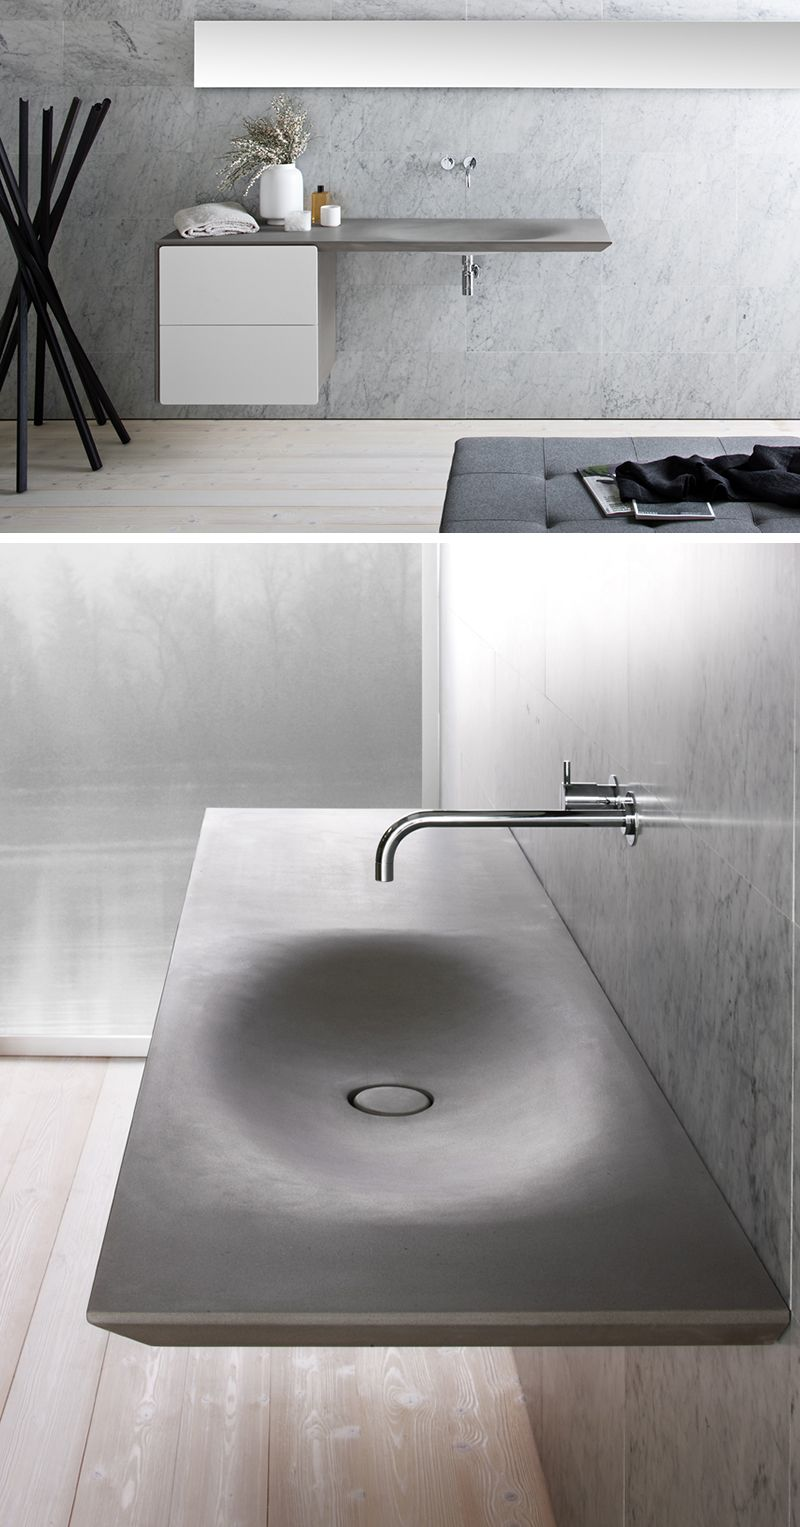 Genial This Modern, Seamless Grey Stone Sink Is Wall Mounted With Two White  Drawers And A Chrome Faucet.